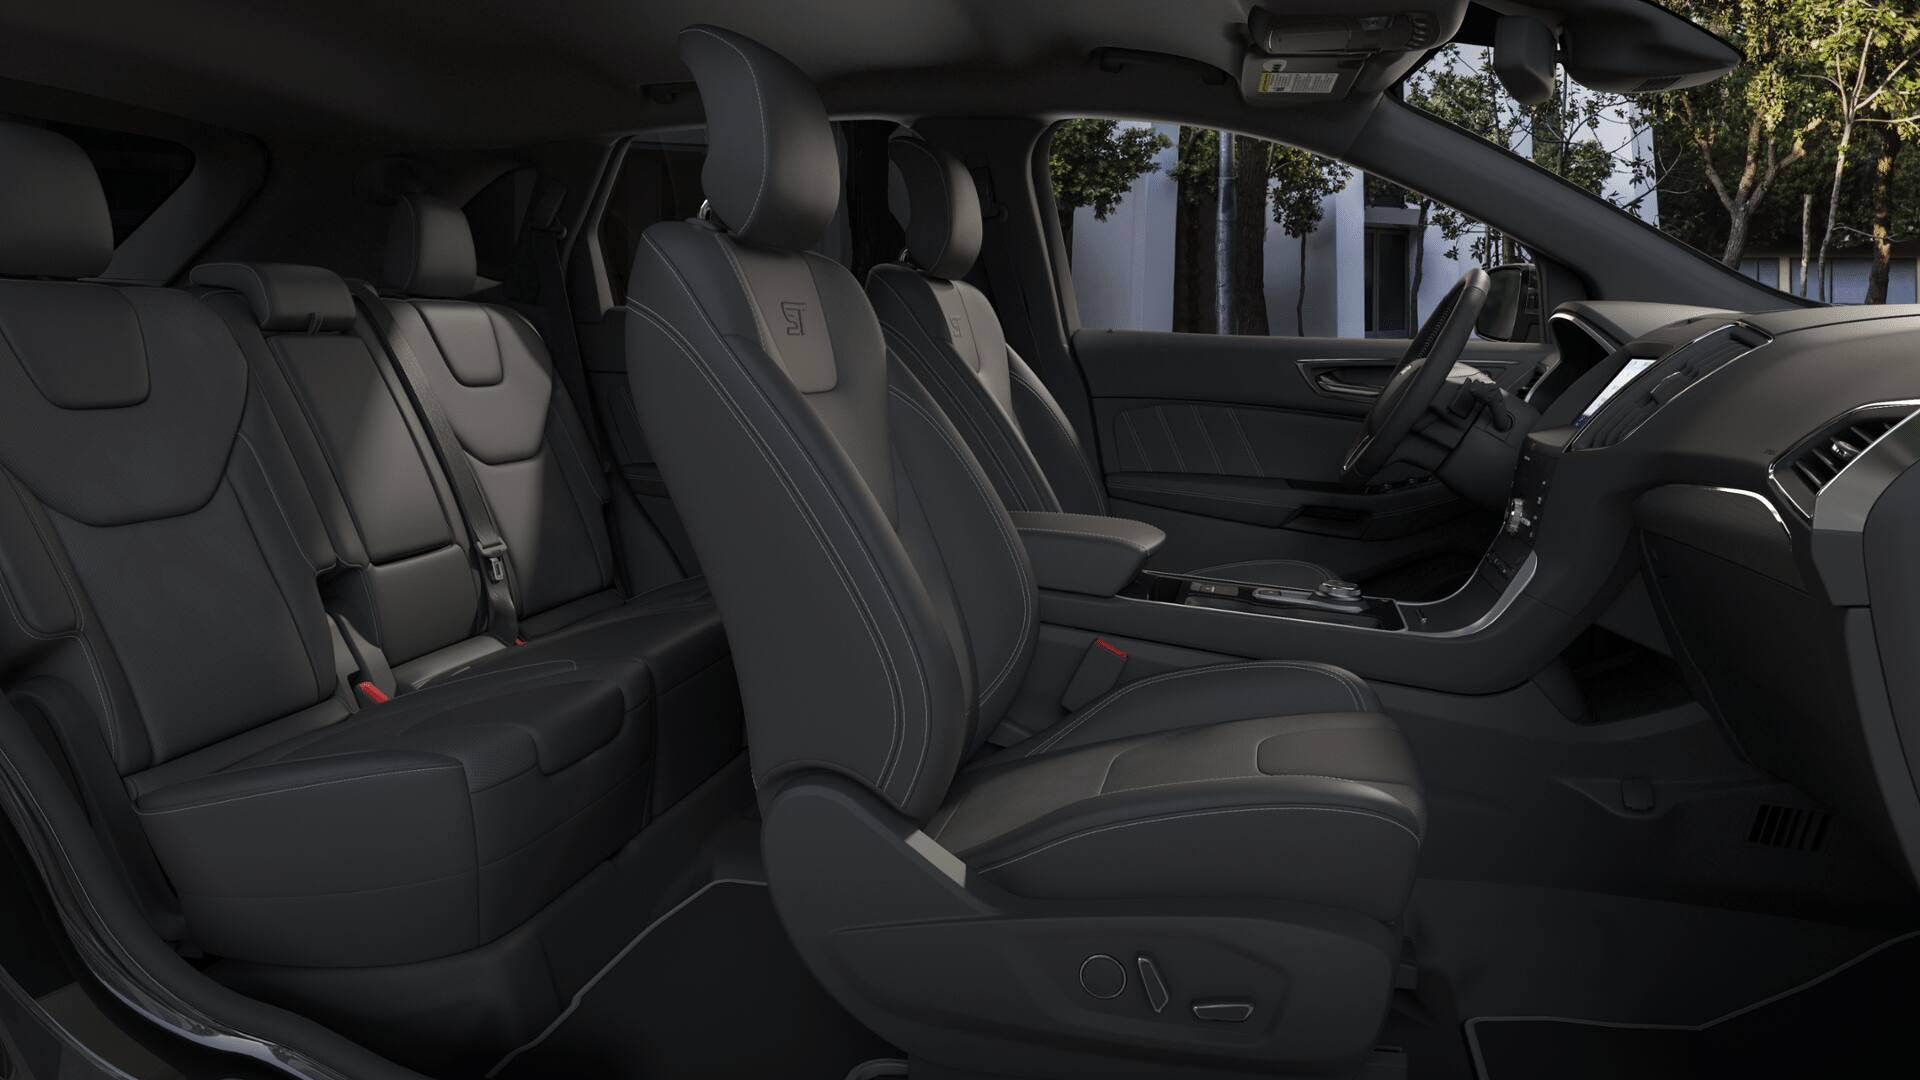 2020 Ford Edge interior leather with Miko inserts seating material